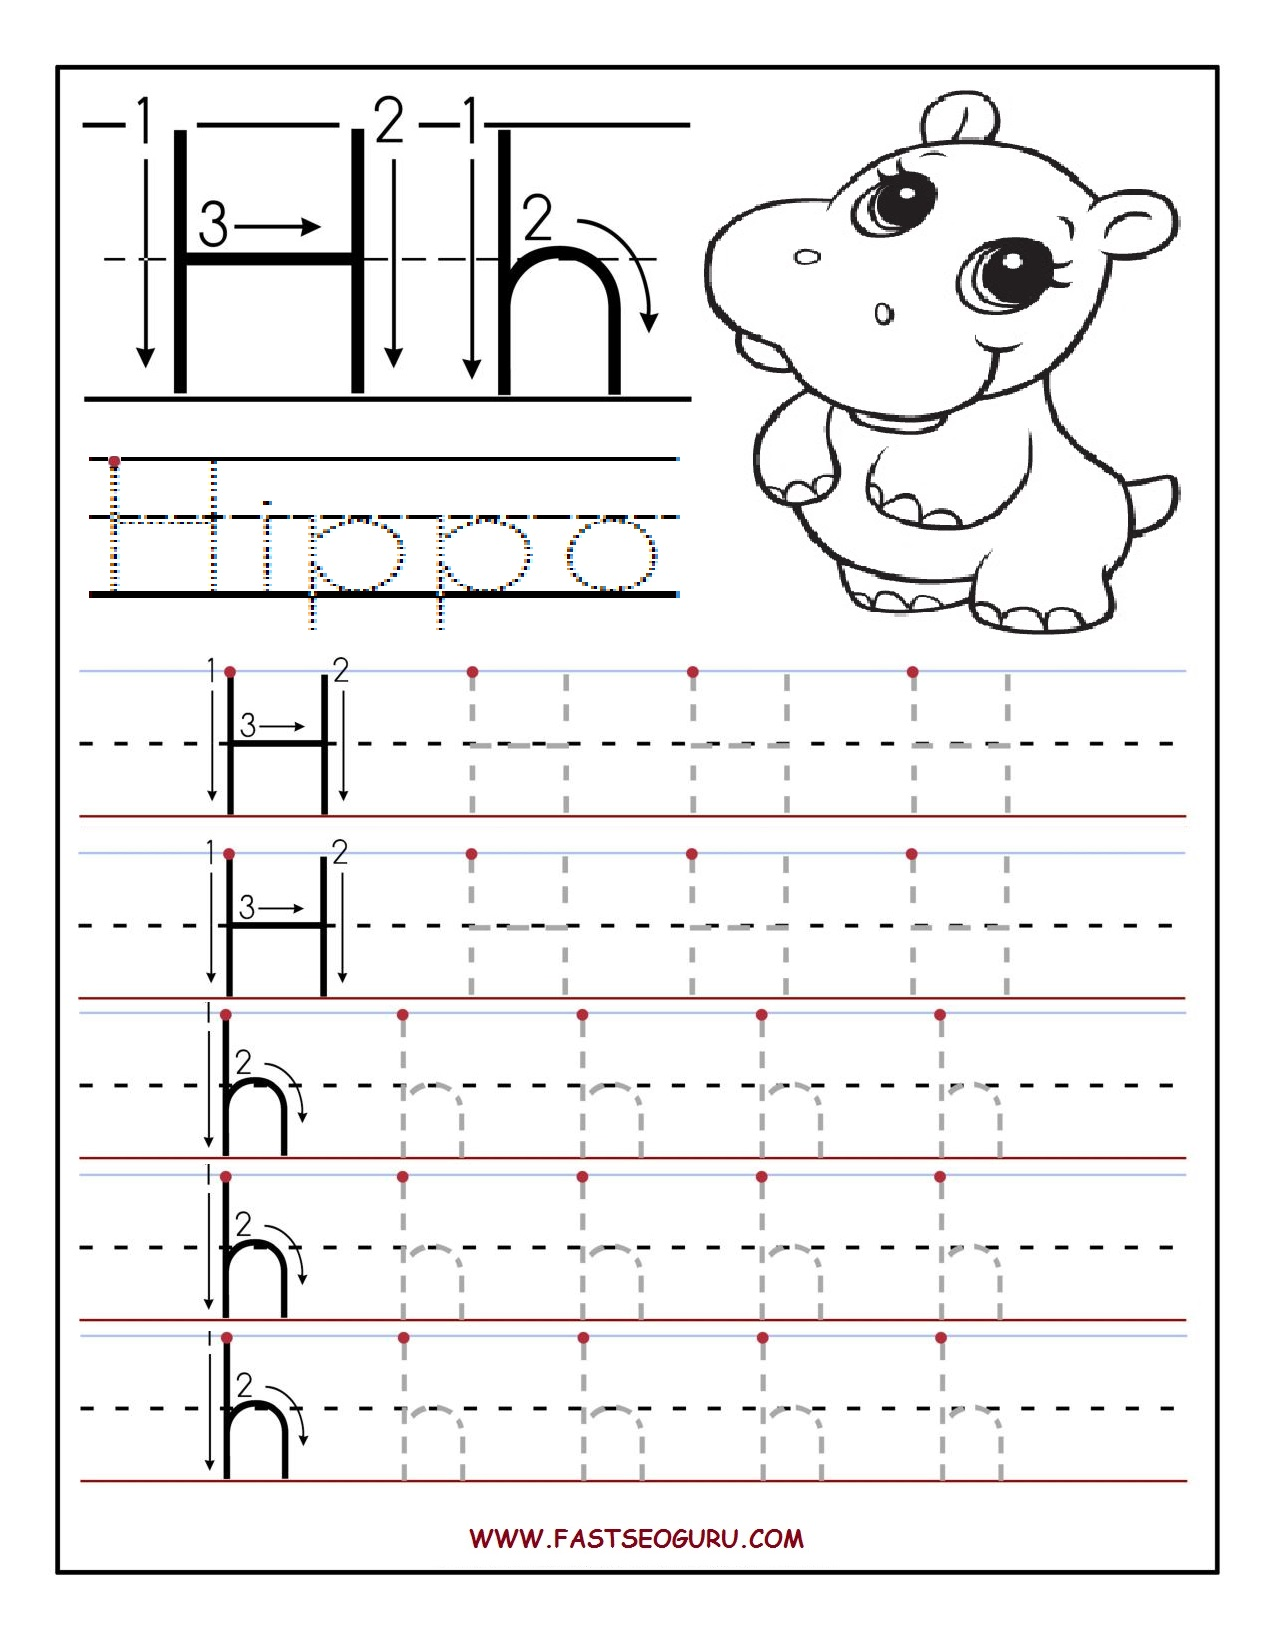 Printable Alphabet Tracing Worksheets Preschool Car Tuning